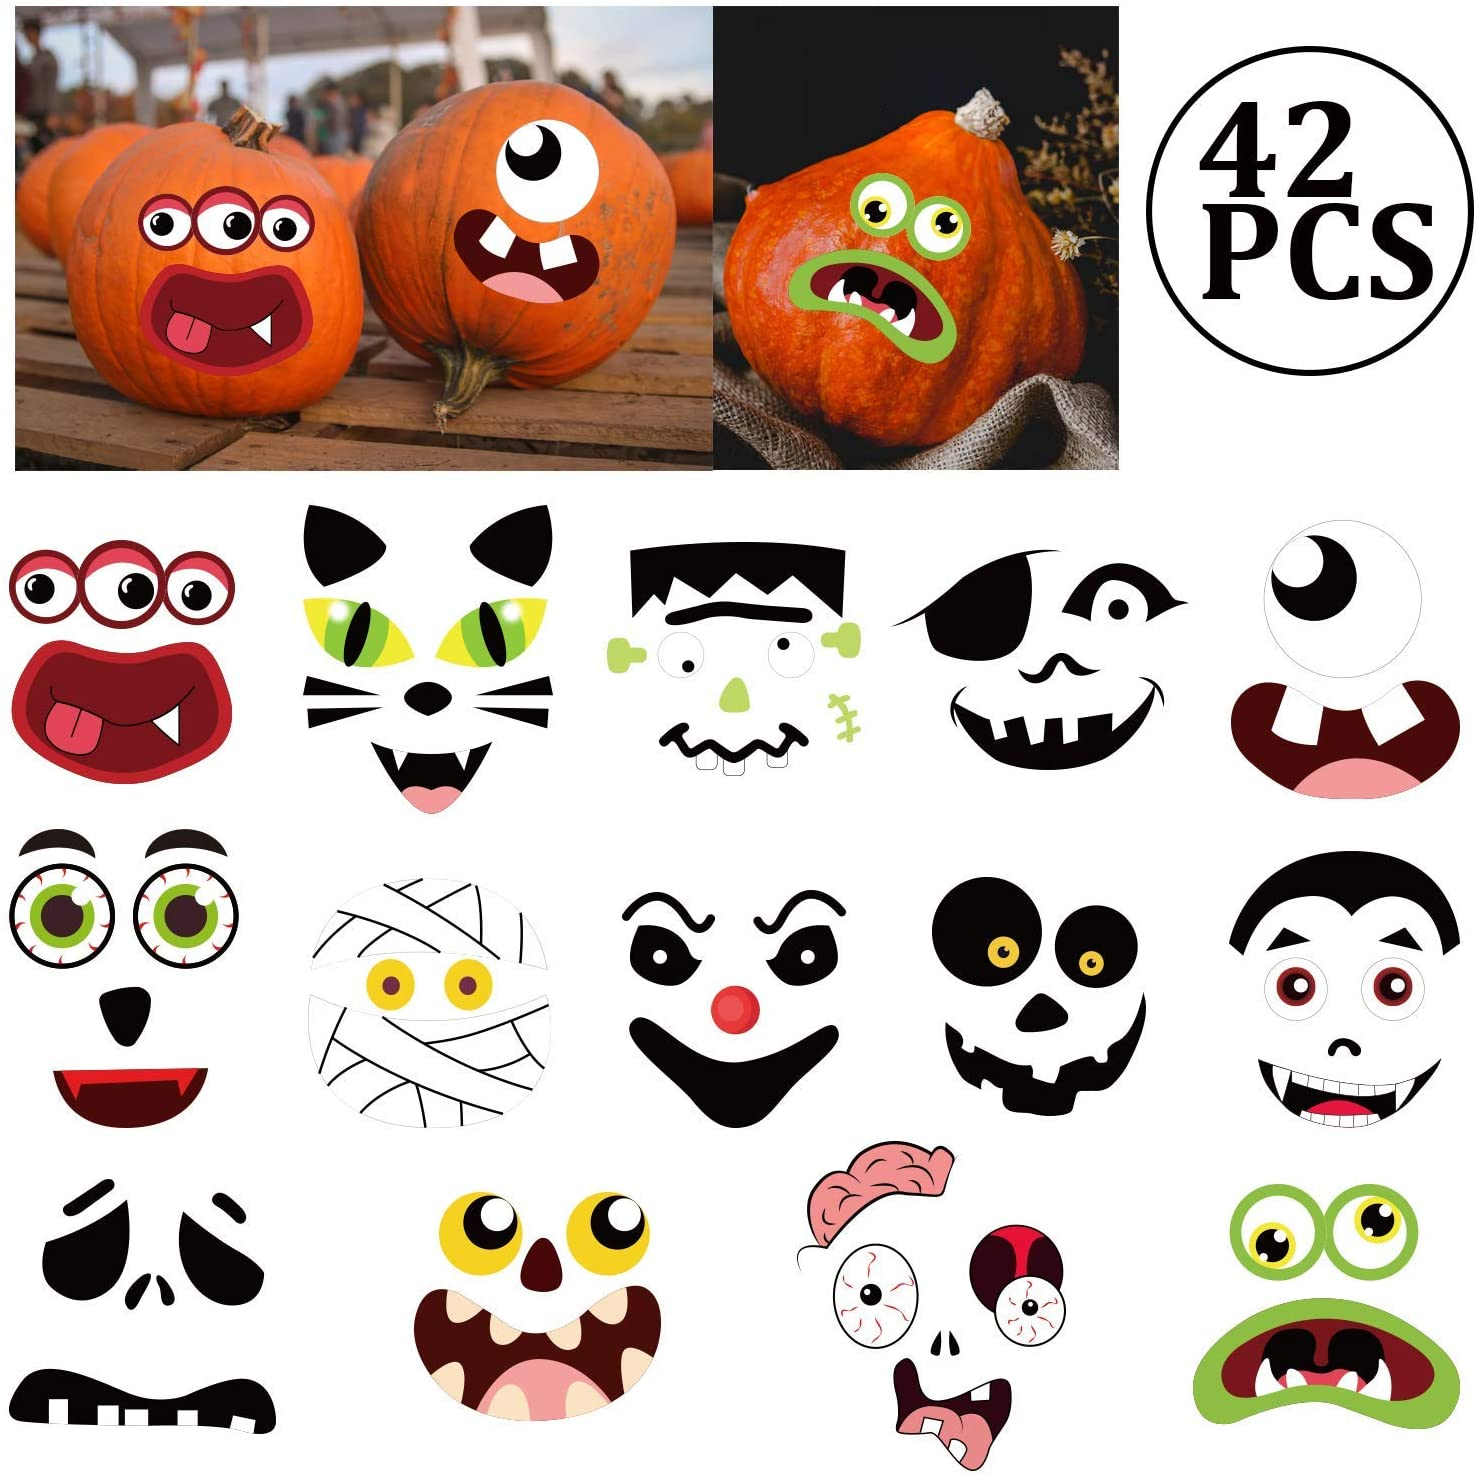 Pumpkin Decorating Craft Stickers - Kids Make Your Own Jack-O-Lantern Face Decals Halloween Party Decorations 42Ct